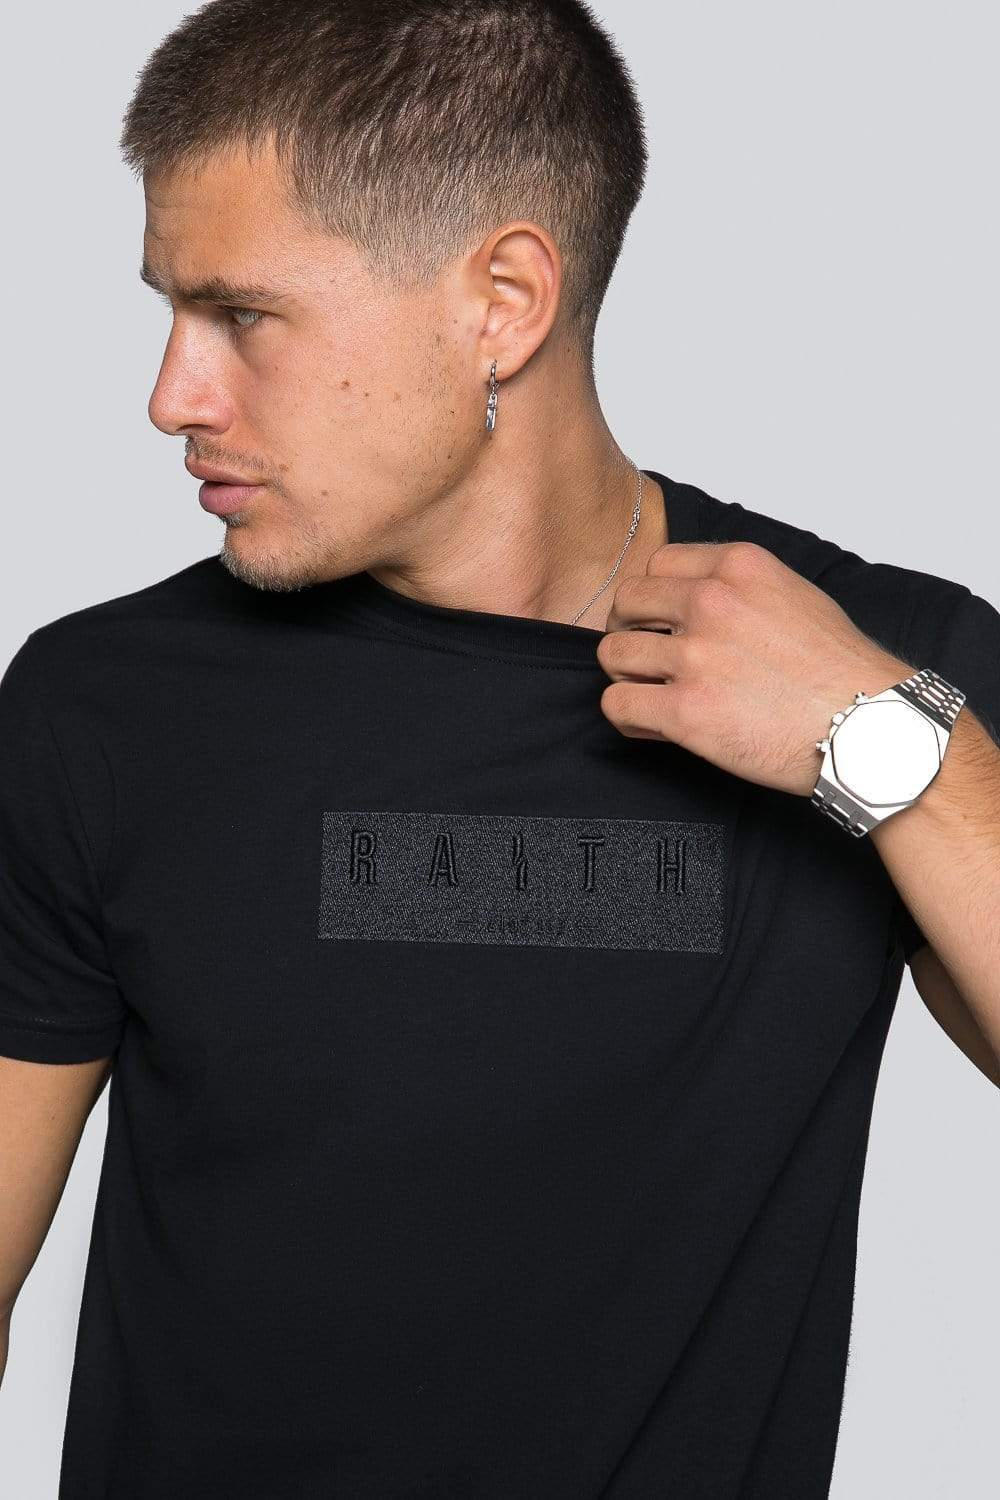 Appliqué Mercerised Tee - Black